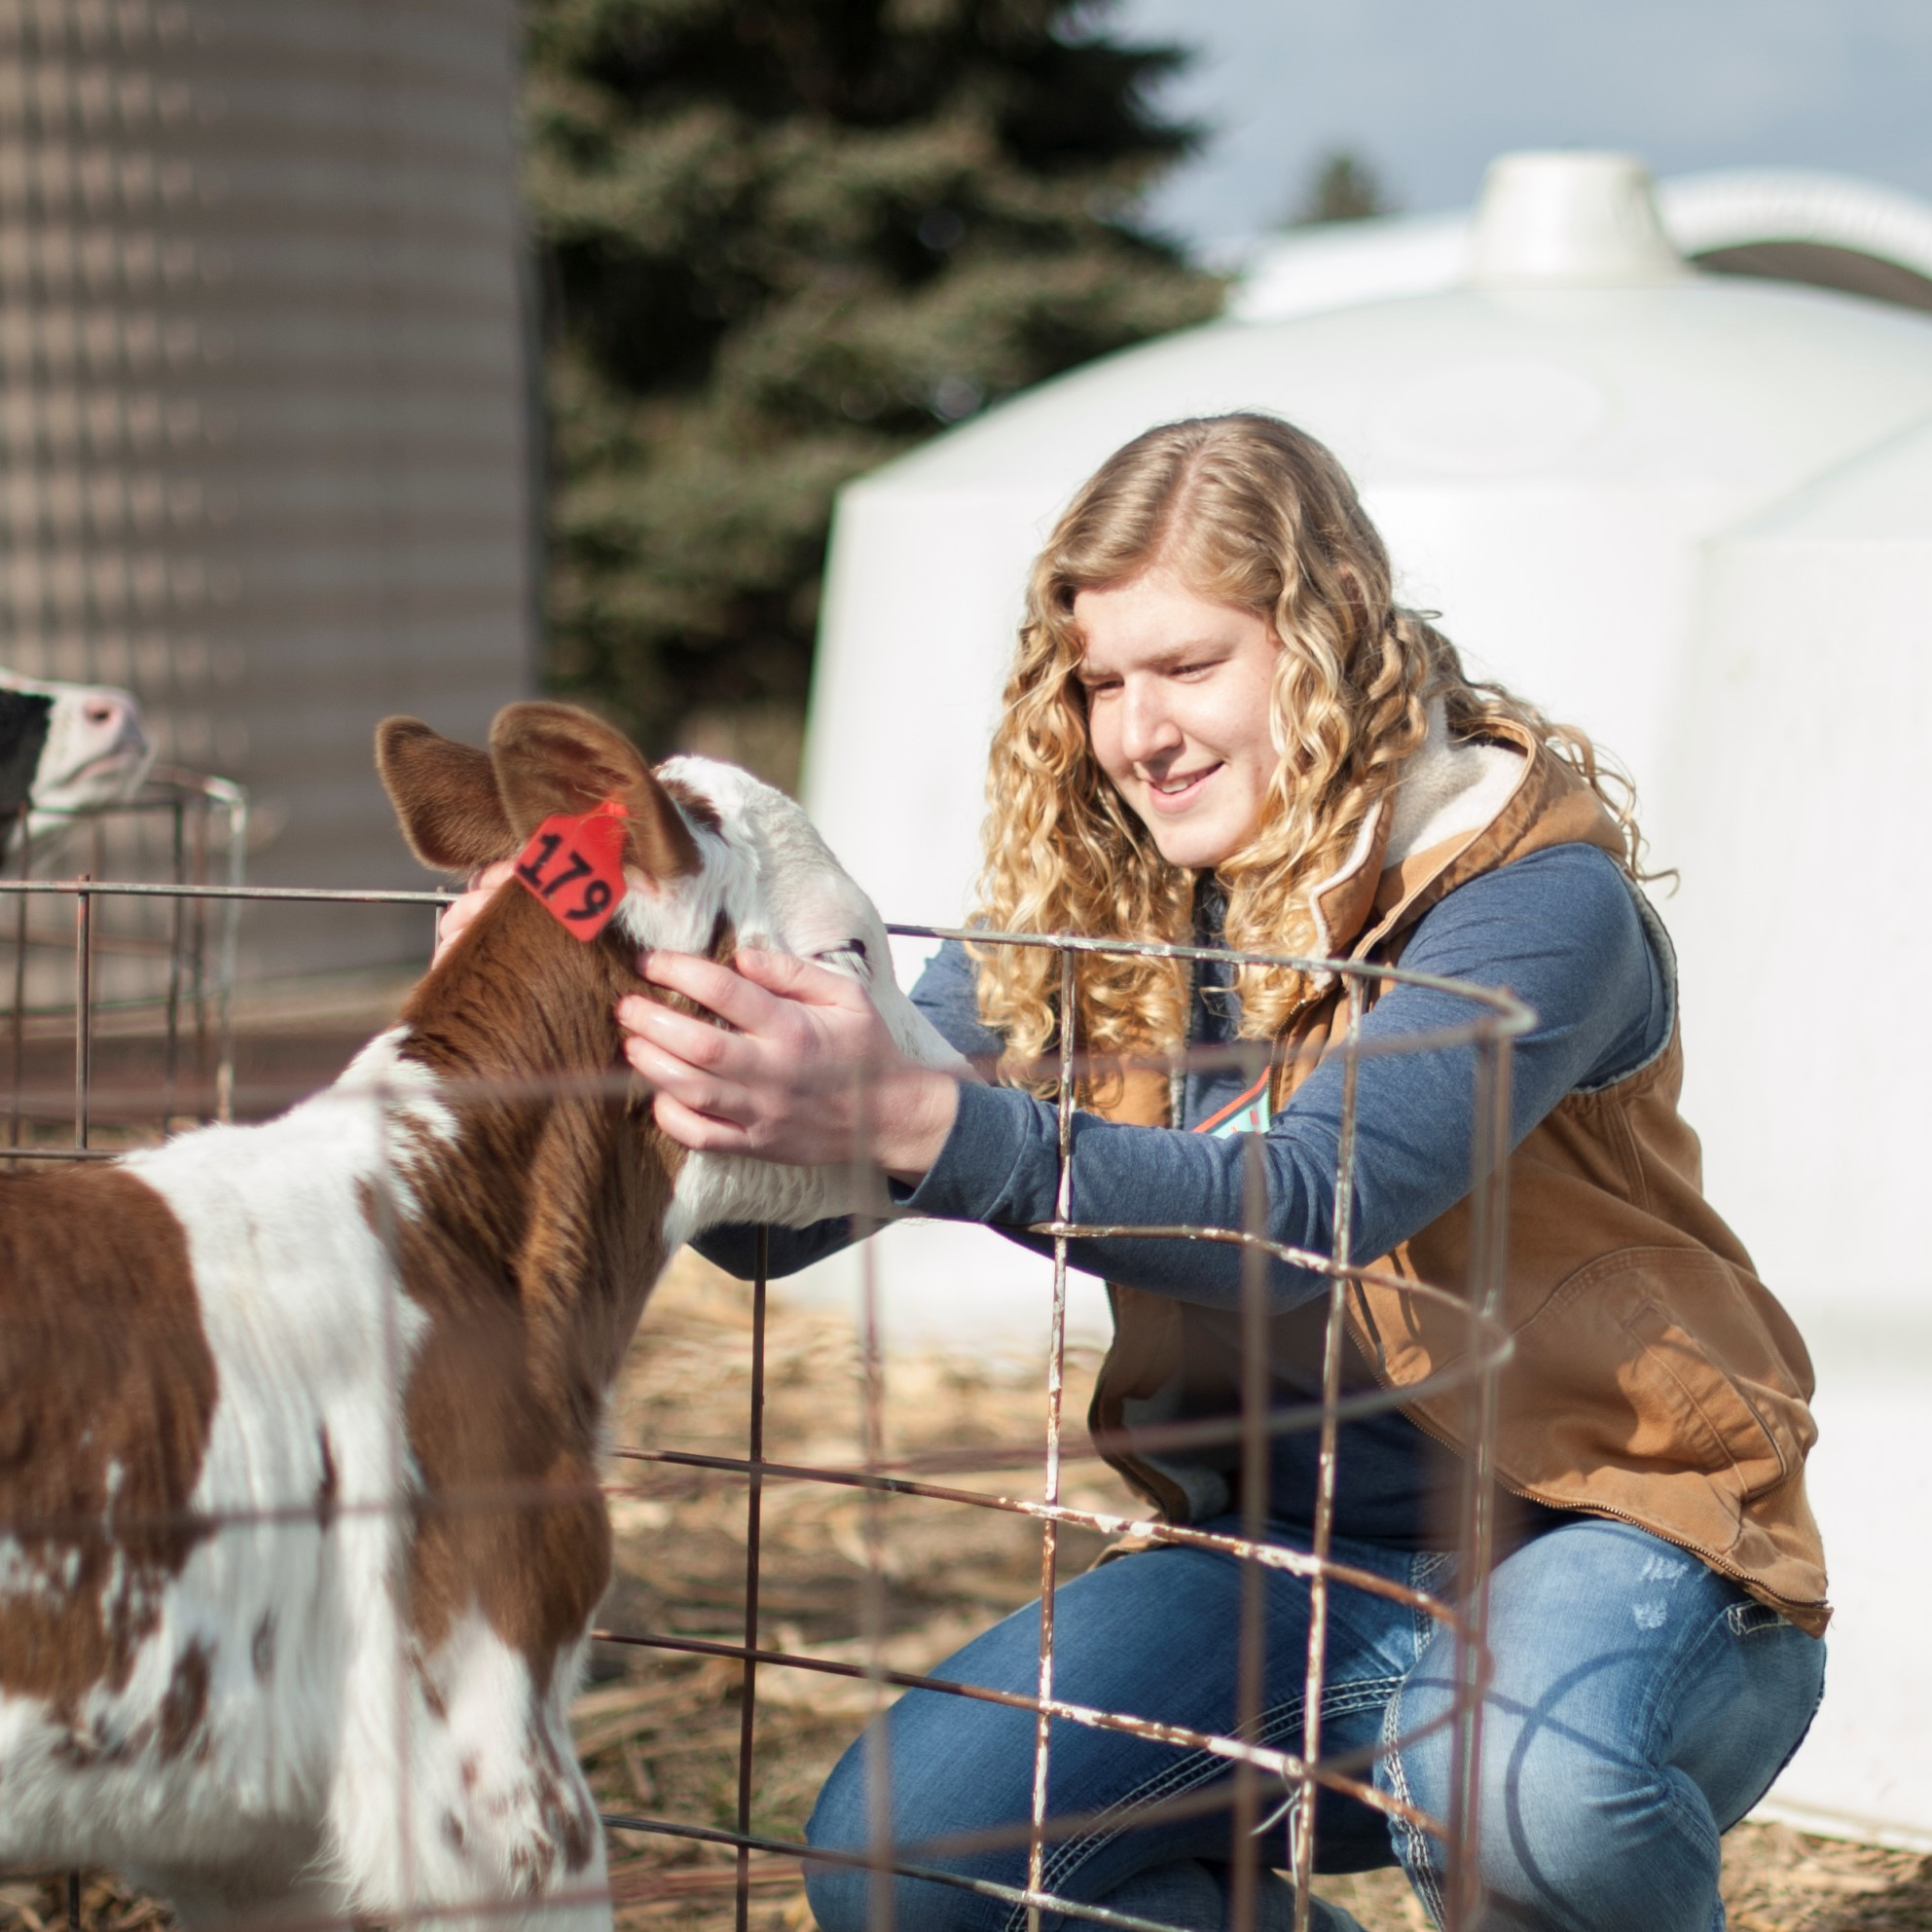 A female student inspects a calf.